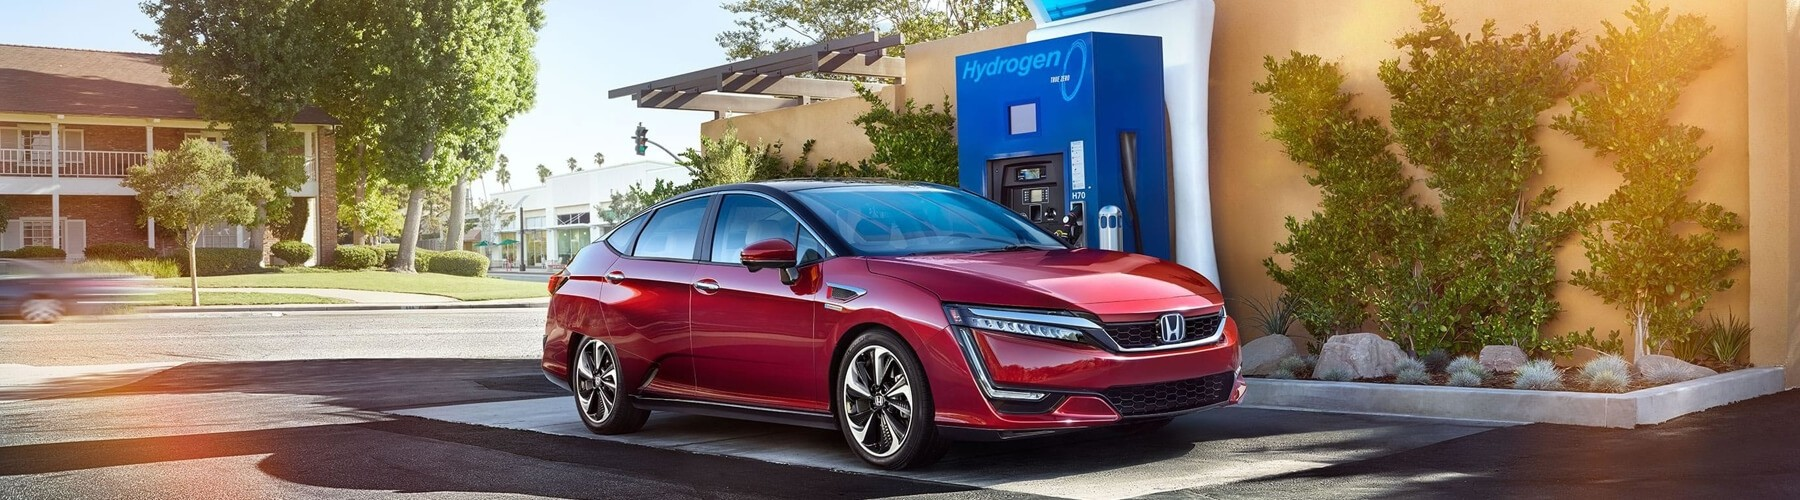 2017 Honda Clarity Fuel Cell Banner